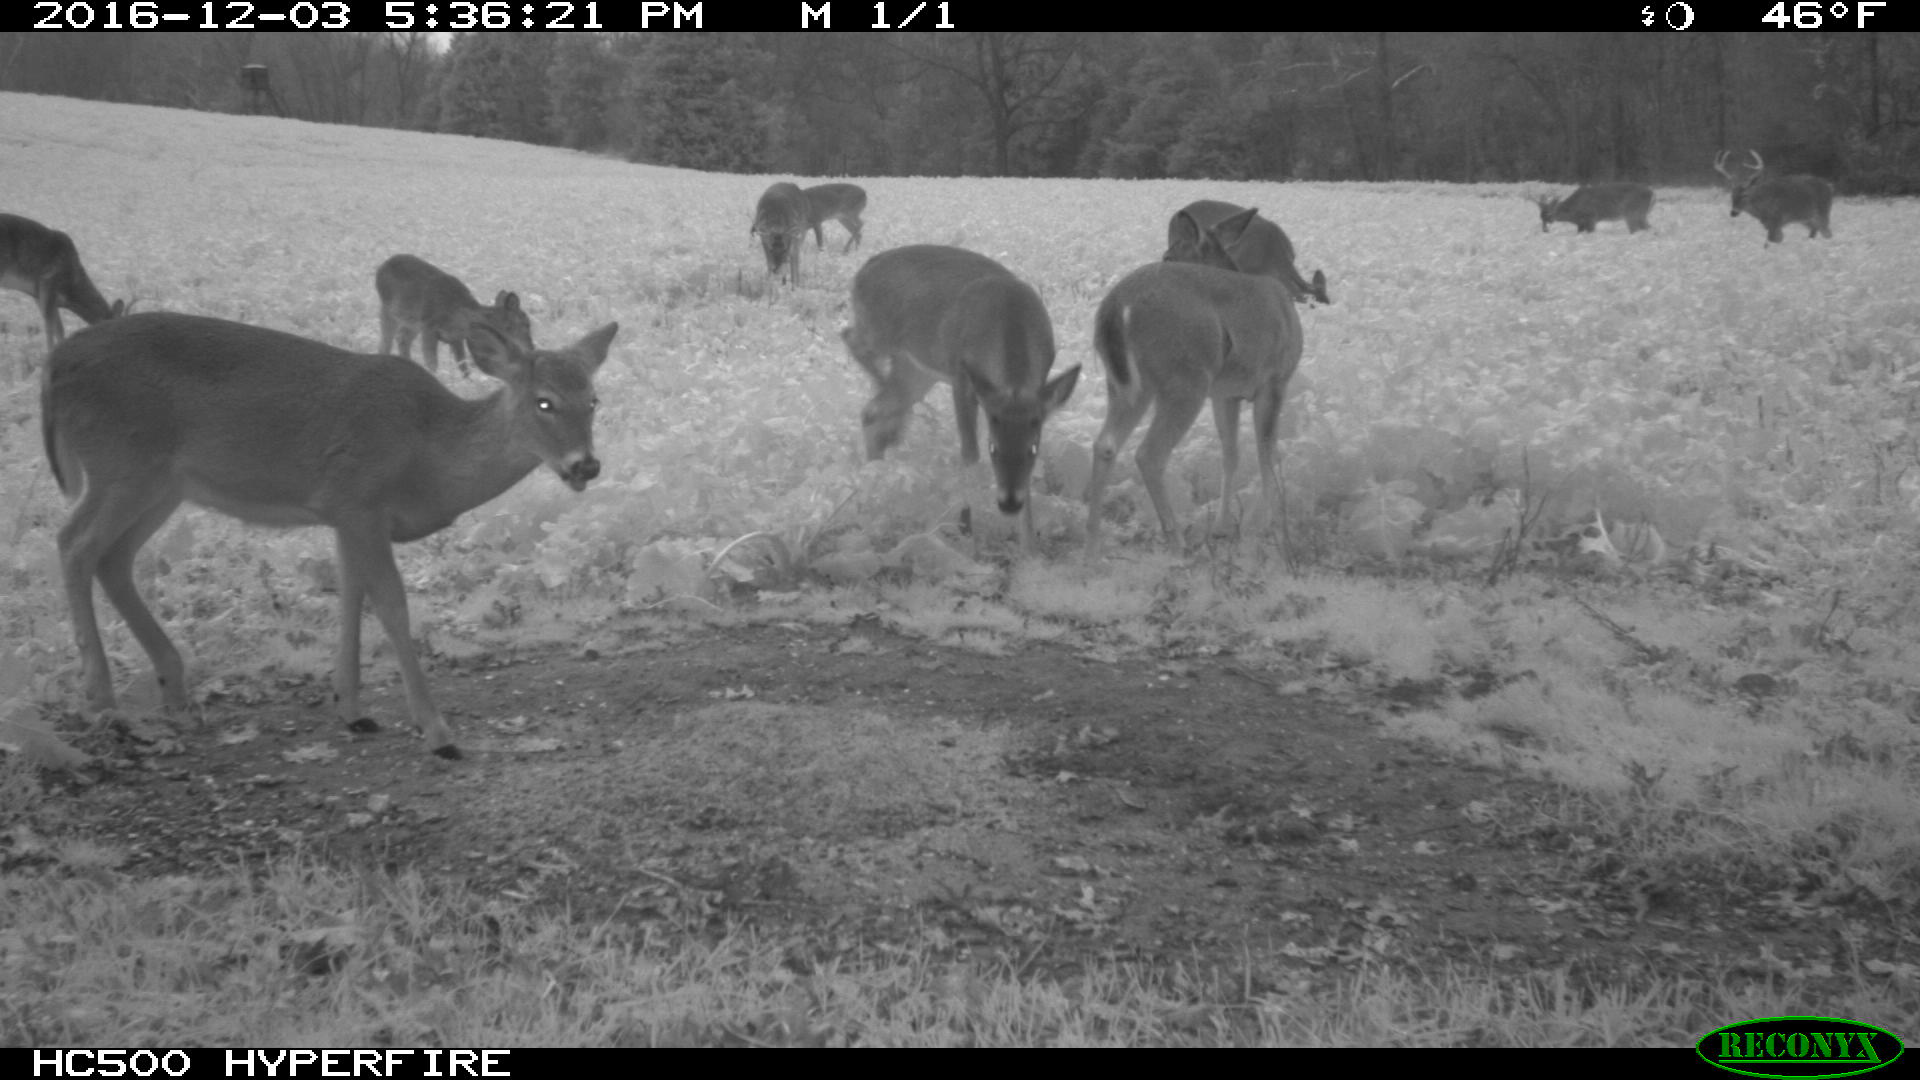 Deer in a food plot during the late season